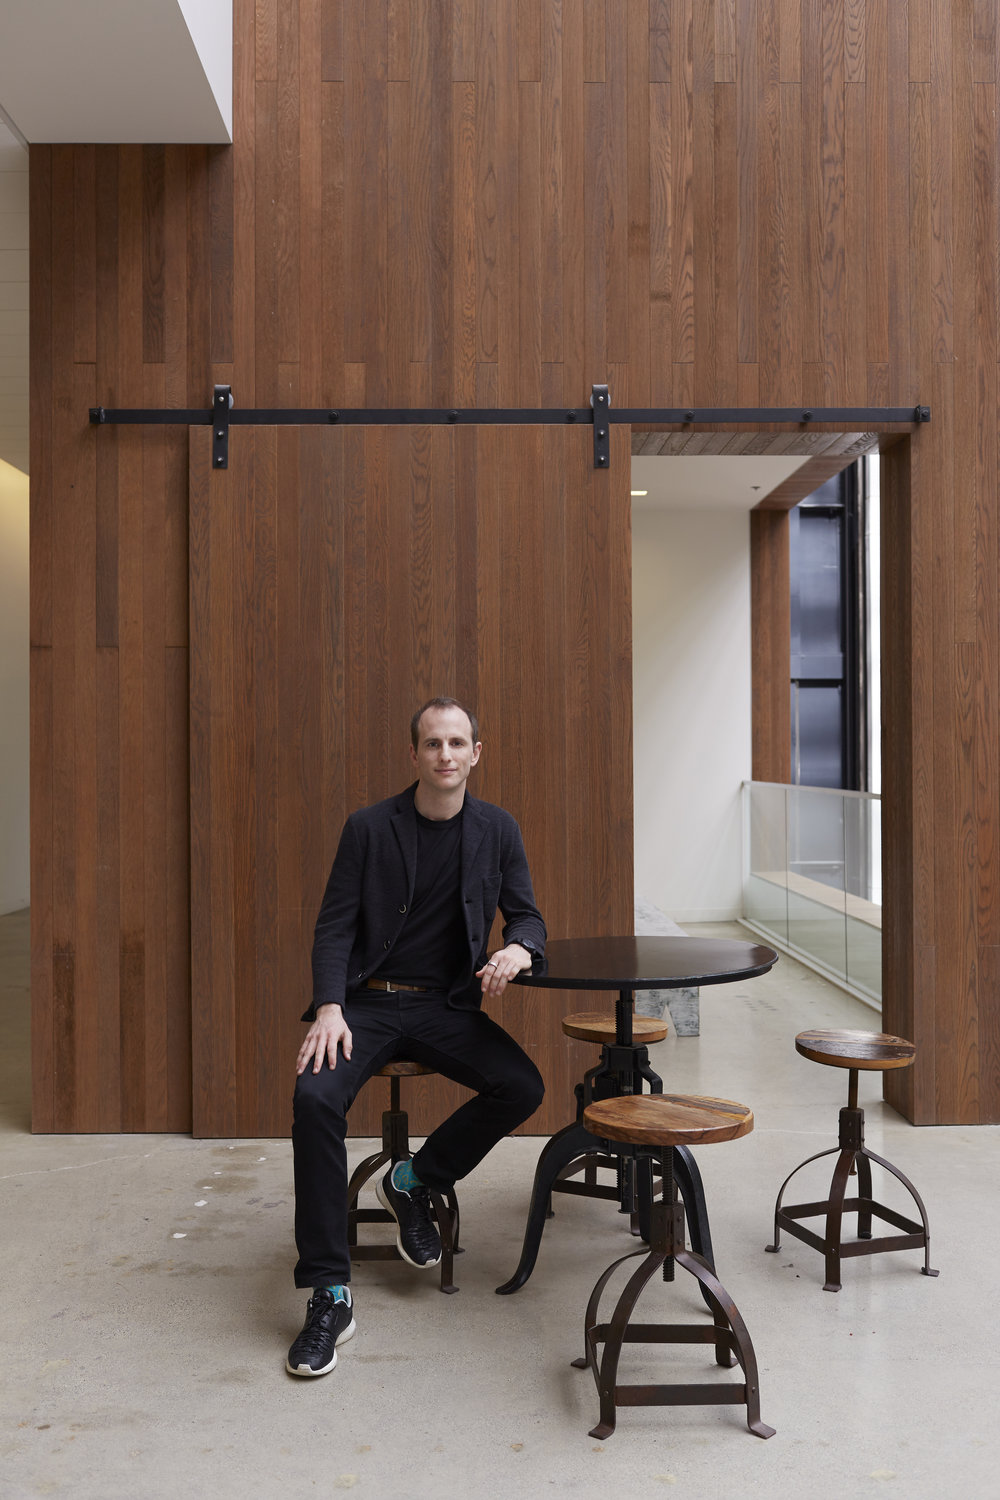 Airbnb Co-Founder Joe Gebbia, photographed at Airbnb HQ in San Francisco, CA for Offscreen Magazine.